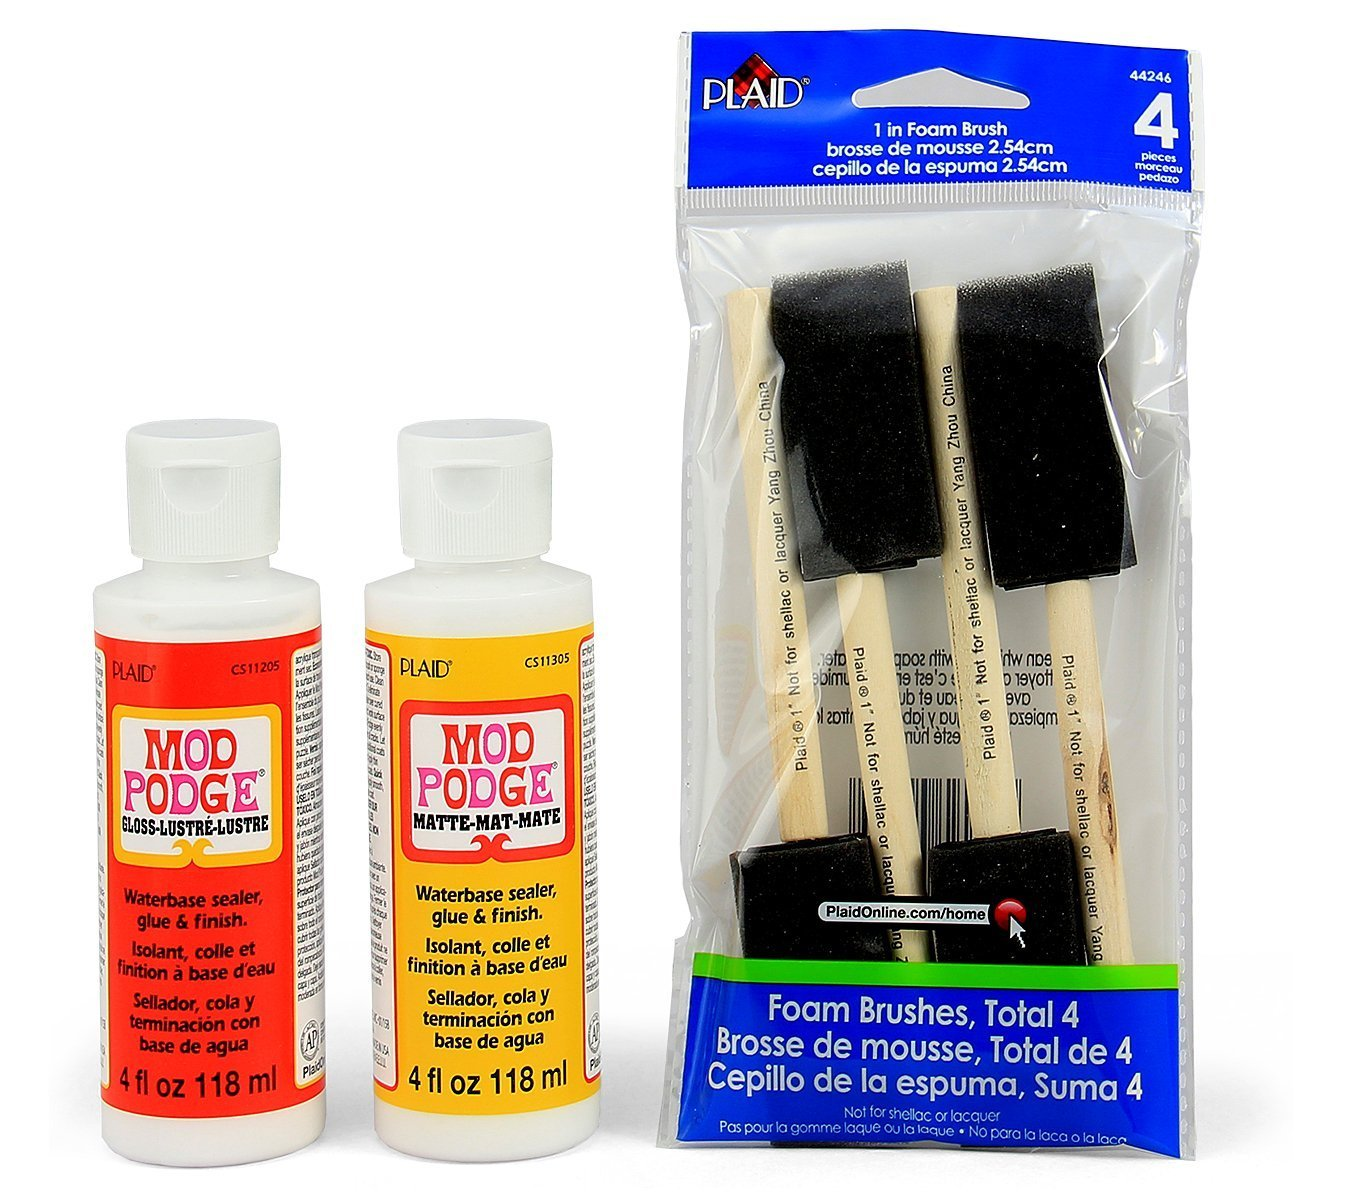 Mod podge matte and gloss with 4 foam brushes for application of glue medium